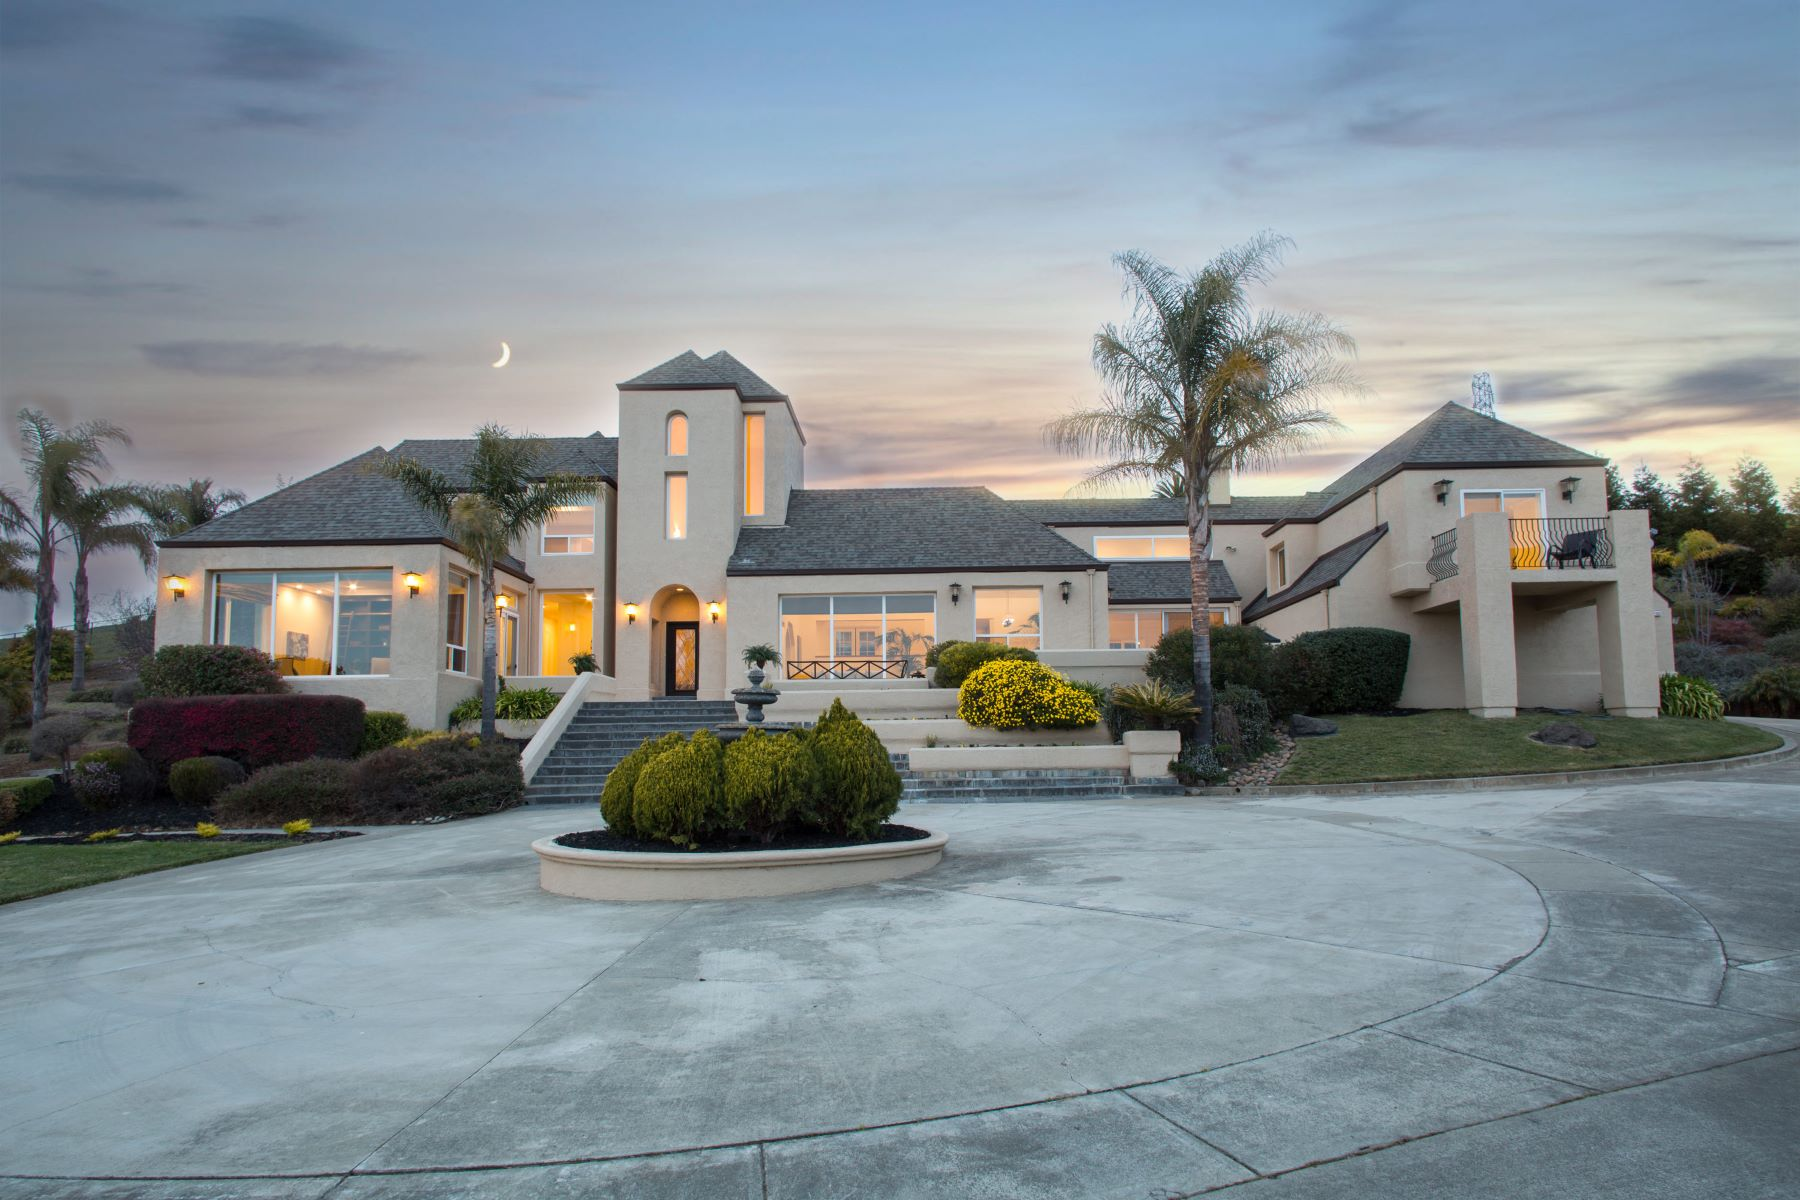 Stunning Custom Mediterranean with Bay Views on 5 Acres! 41280 Vargas Road Fremont, California 94539 United States